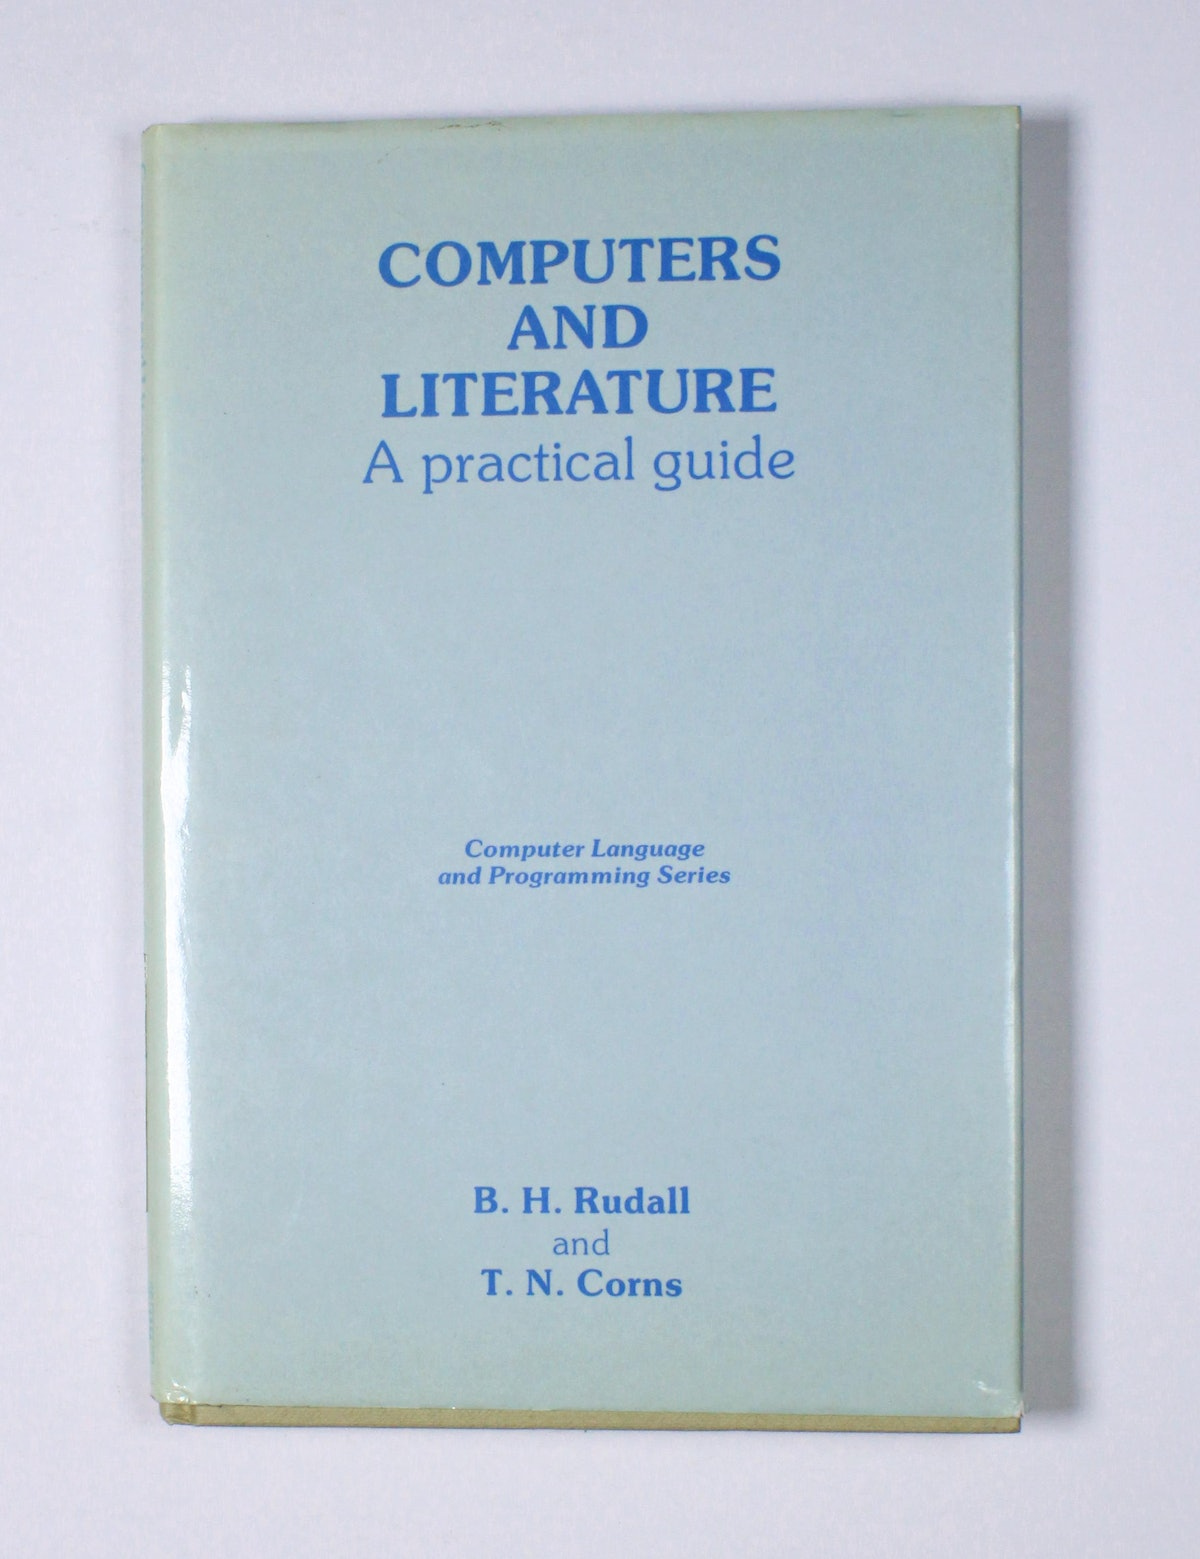 Computers and Literature: A Practical Guide